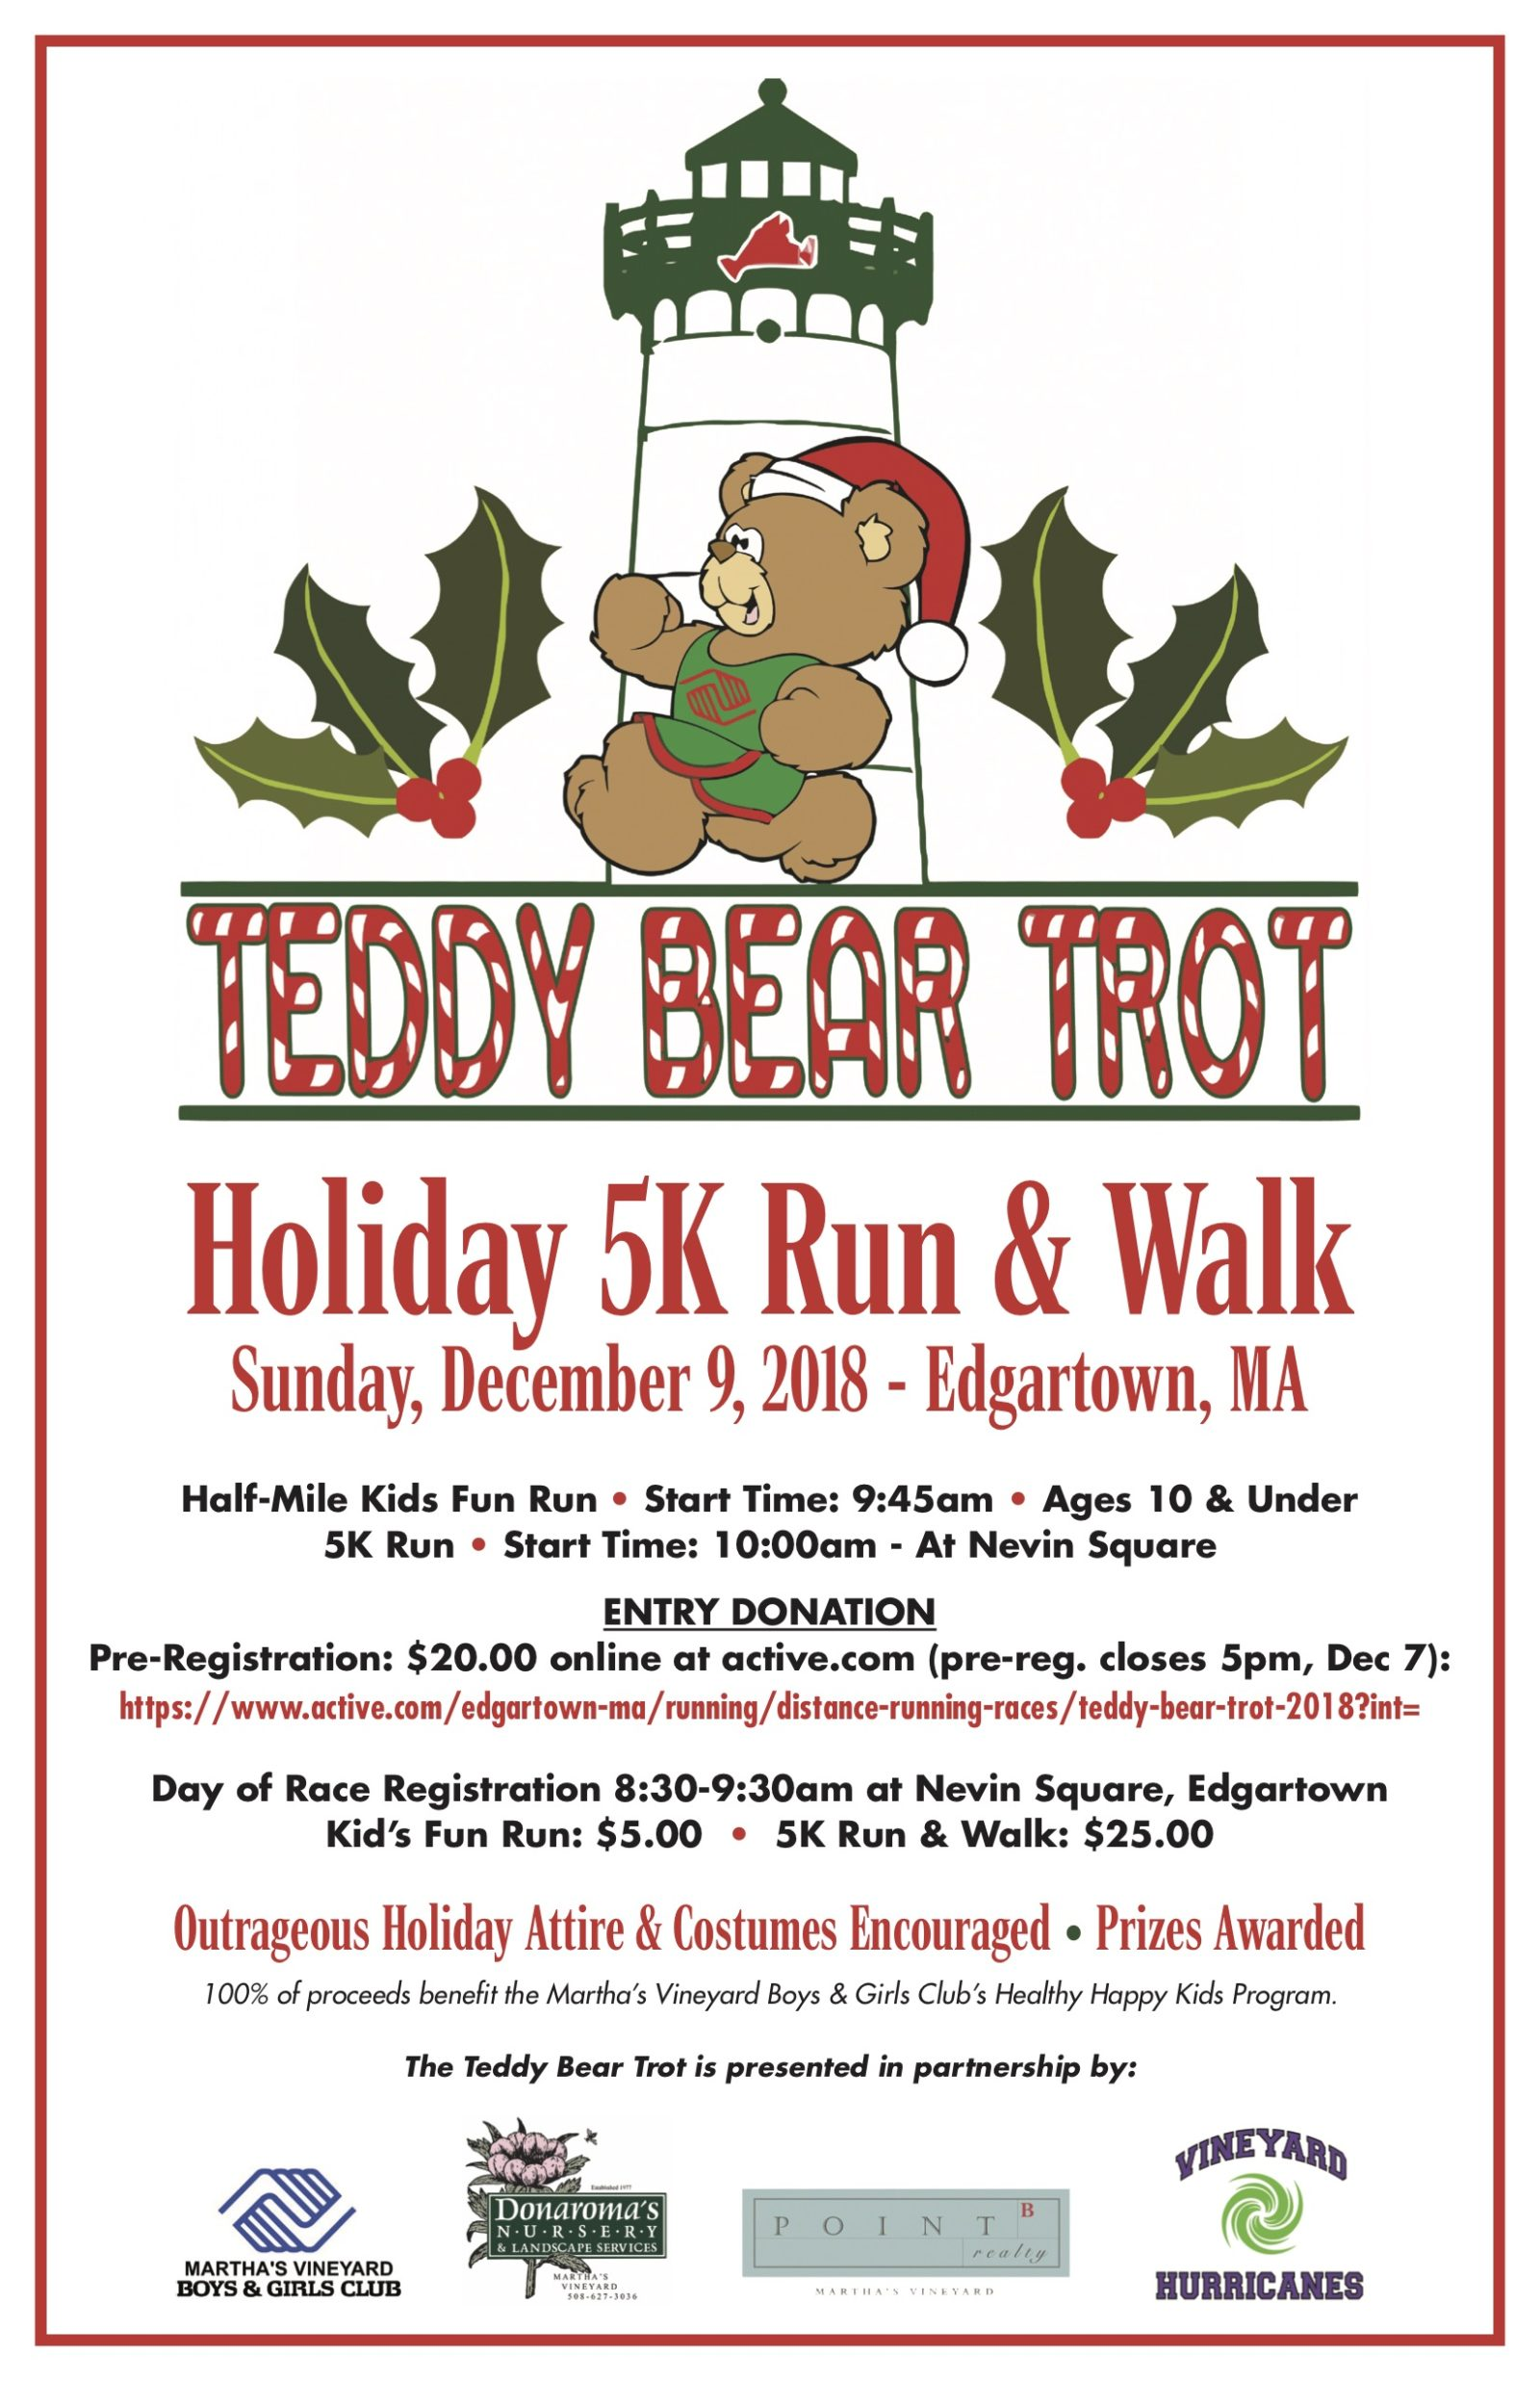 Martha's Vineyard Teddy Bear Suite Fundraiser Teddy Bear Trot Holiday 5K Run & Walk Supports MV Boys & Girls Club Healthy Happy Kids Program